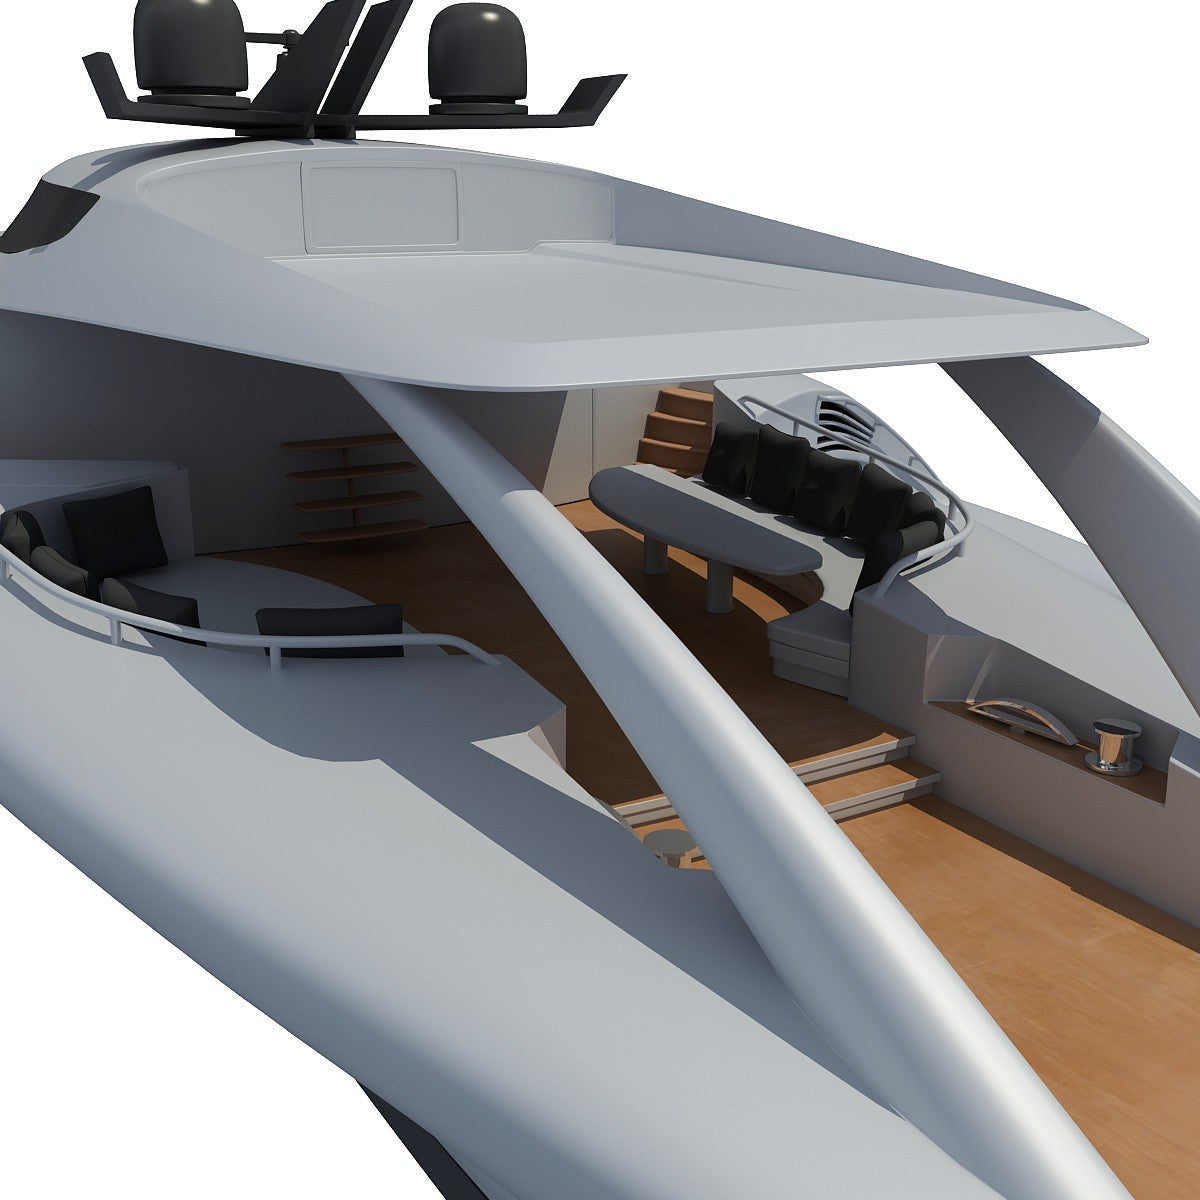 3D Luxury Yachts